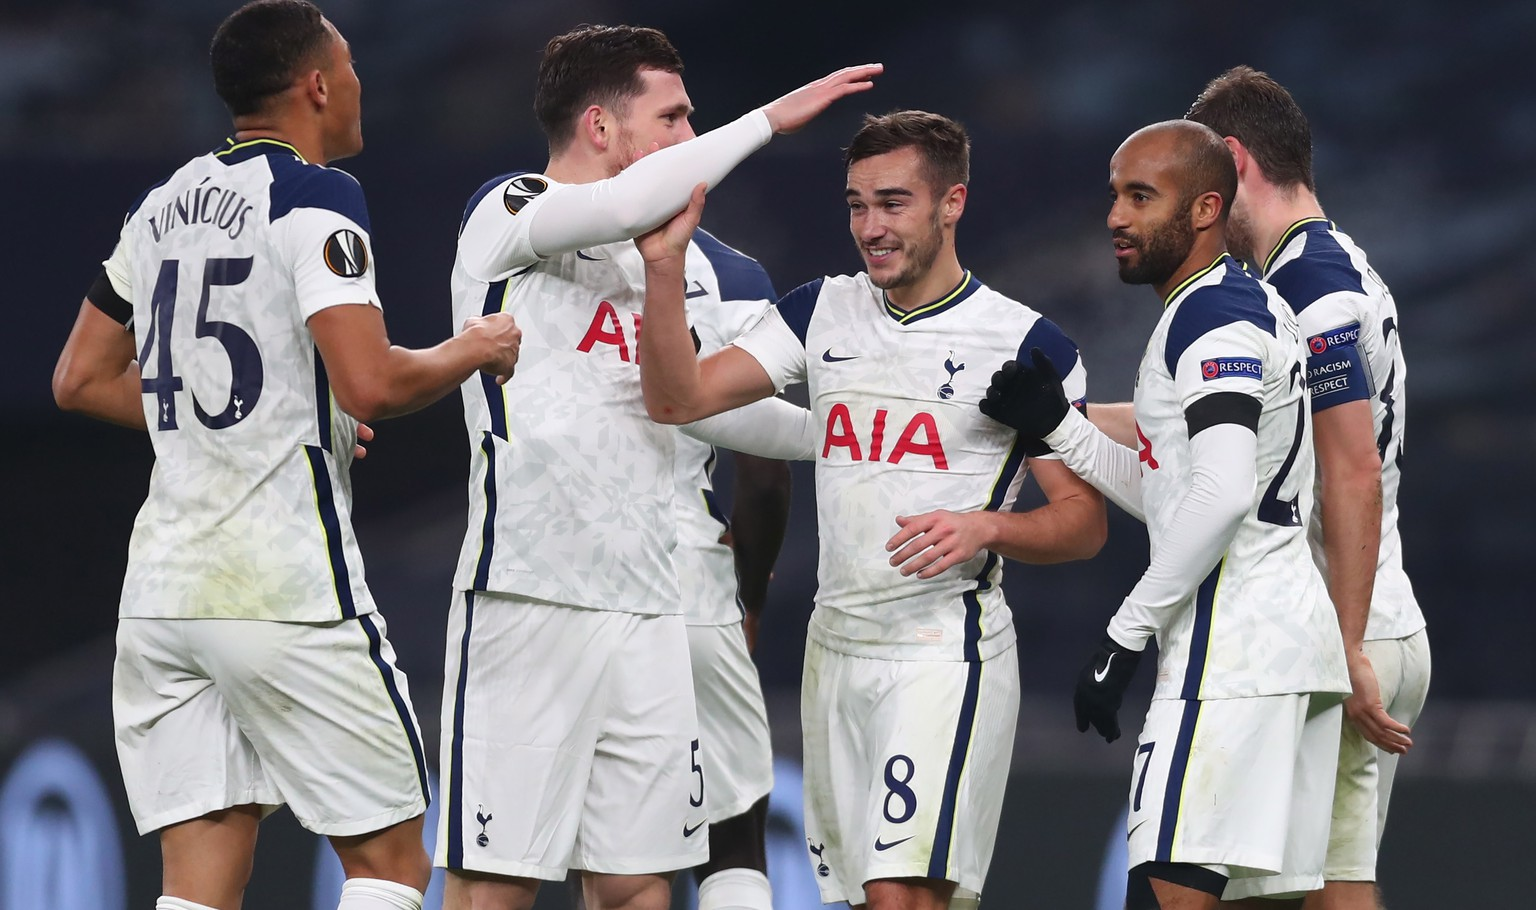 epa08845038 Tottenham Hotspur's Harry Winks (C) celebrates with team mates after scoring the 3-0 goal during the UEFA Europa League soccer match between Tottenham Hotspur and Ludogorets Razgrad in London, Britain, 26 November 2020.  EPA/Clive Rose / POOL